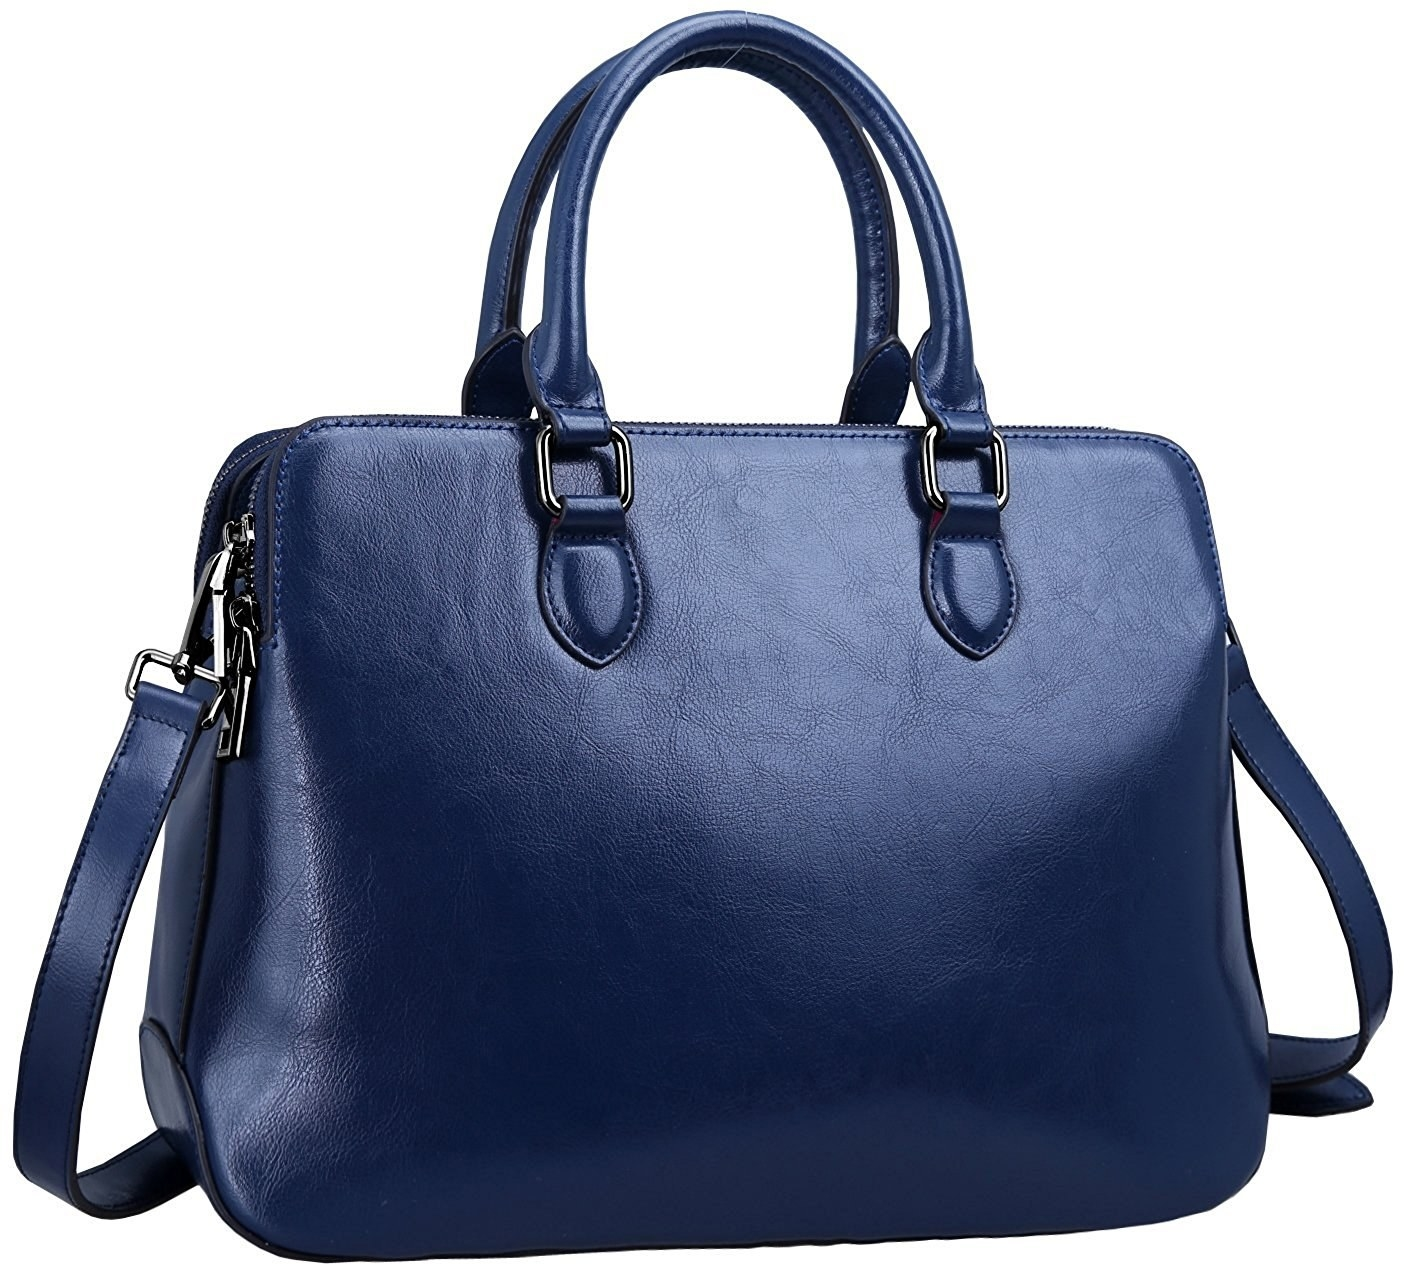 570b75cae344 A sleek top-handle bag to give your life some structure.